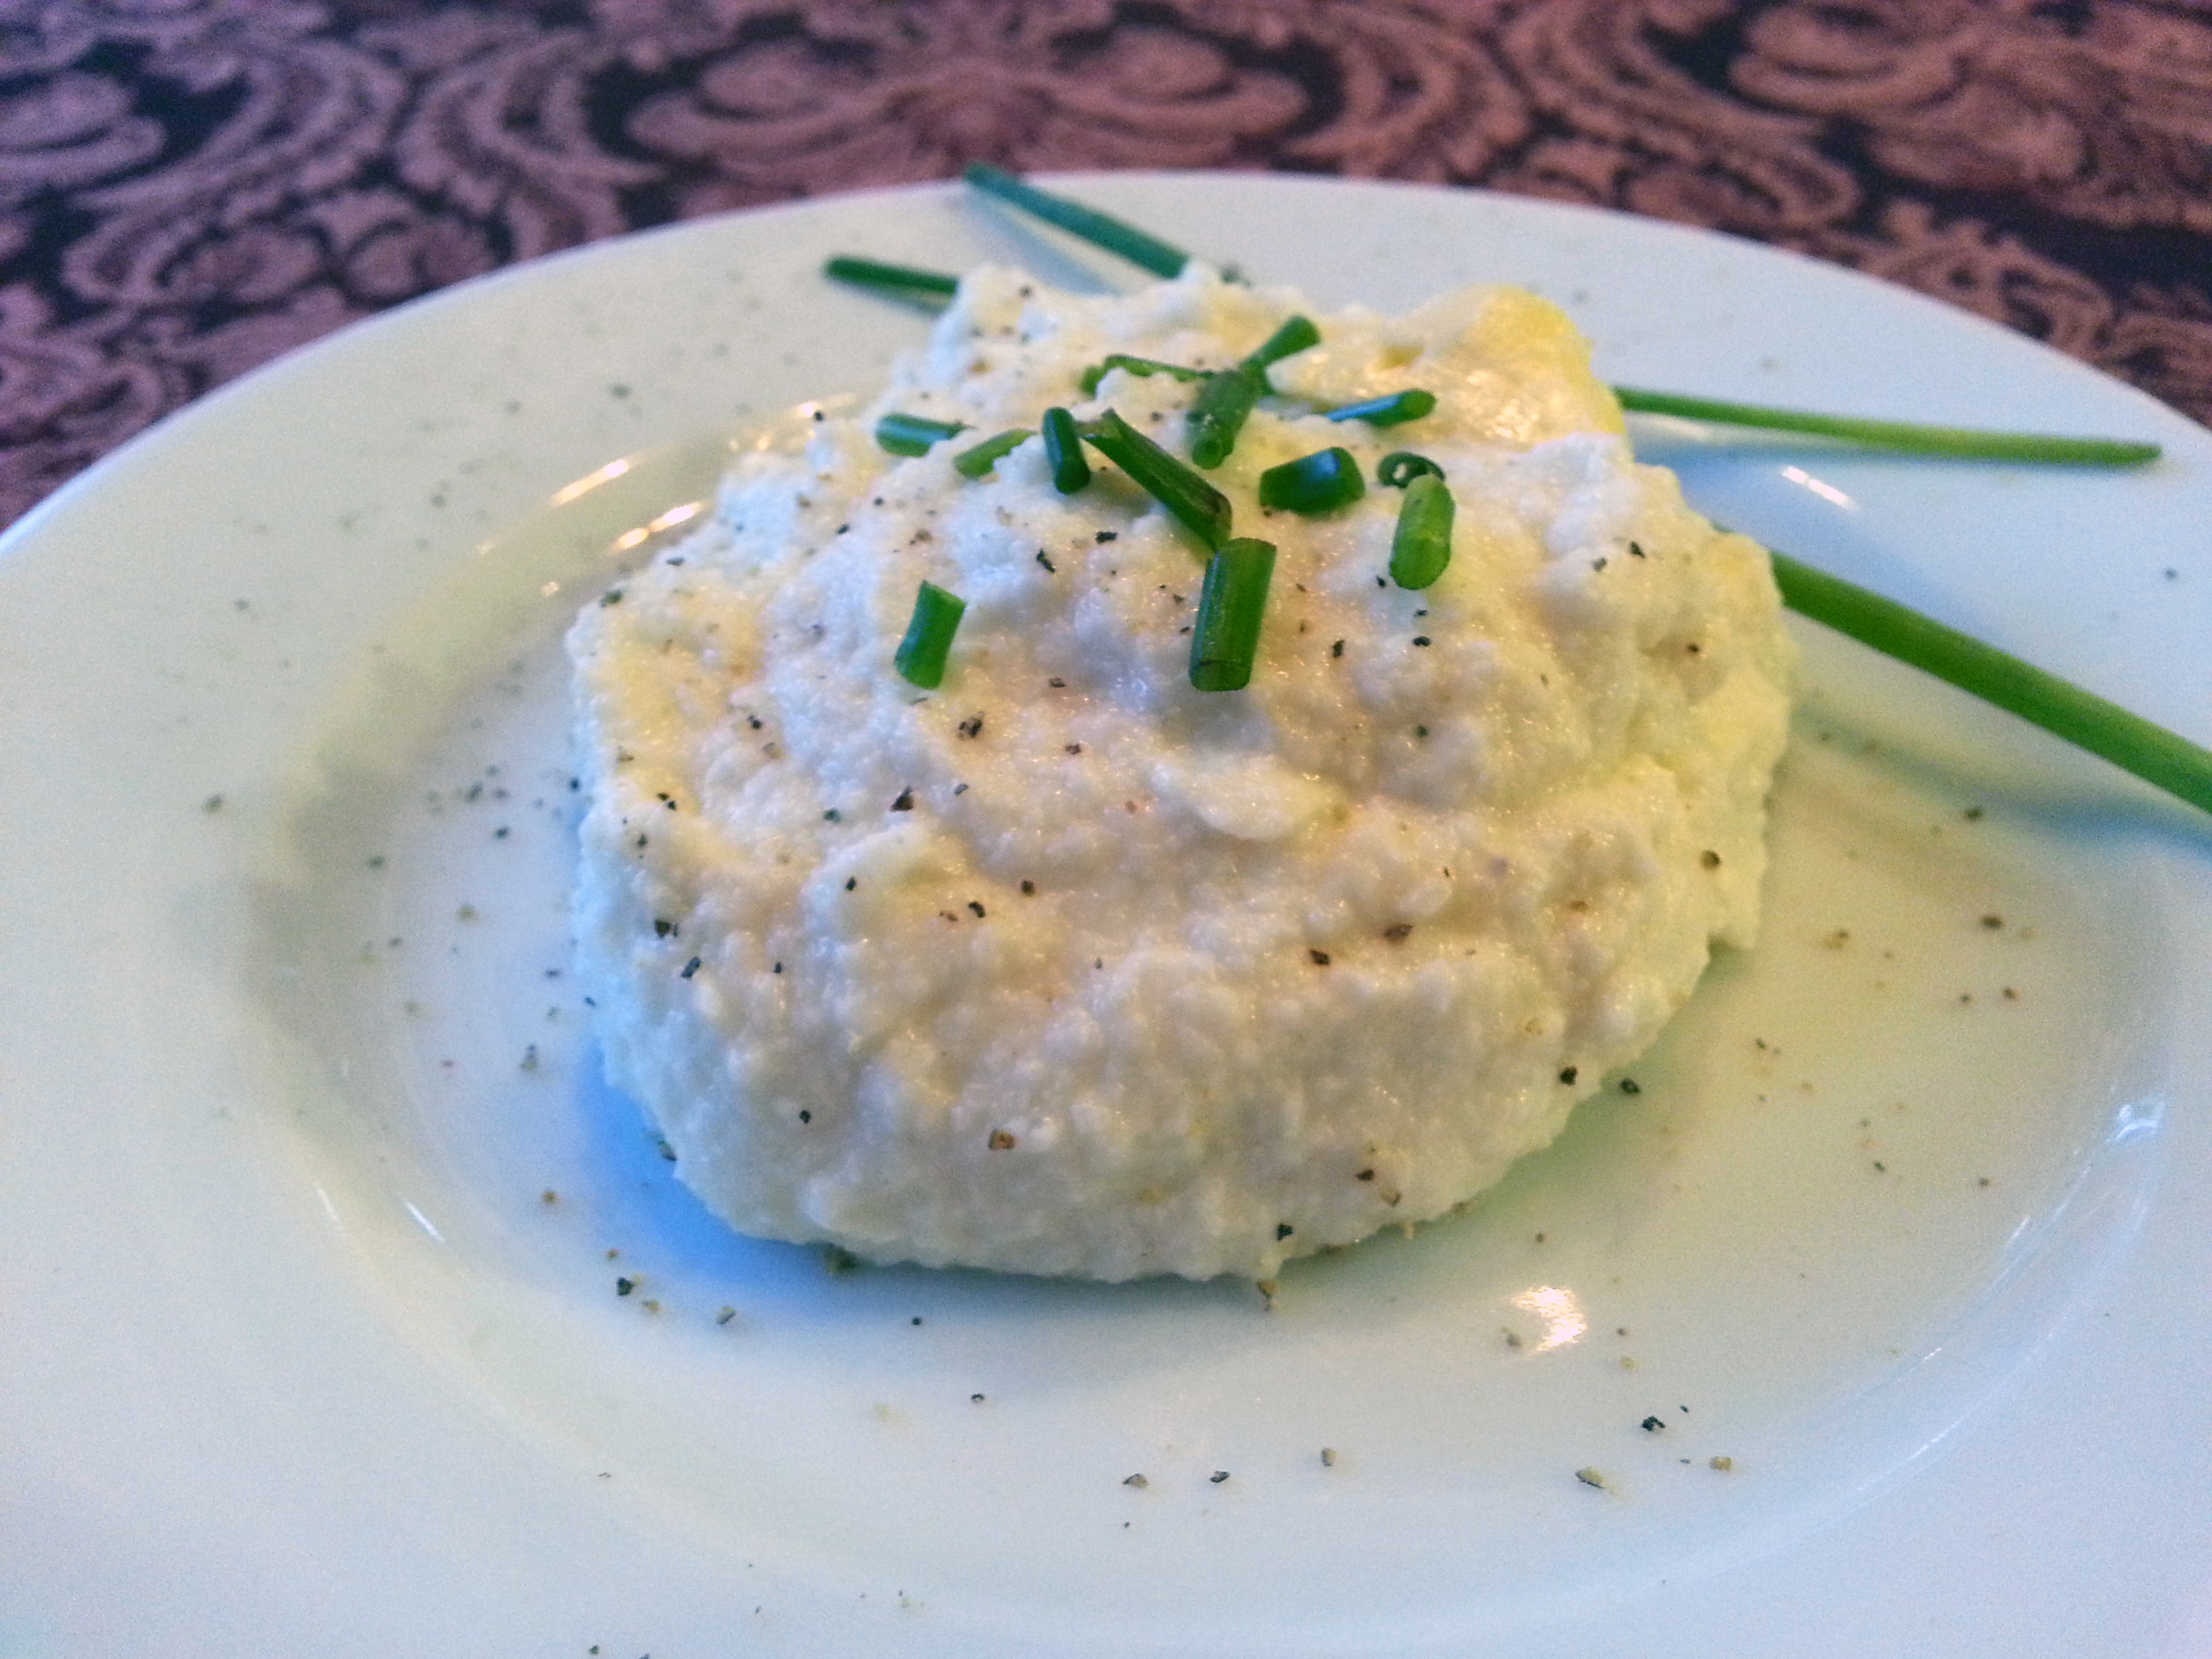 Cauliflower sour cream and chive mash